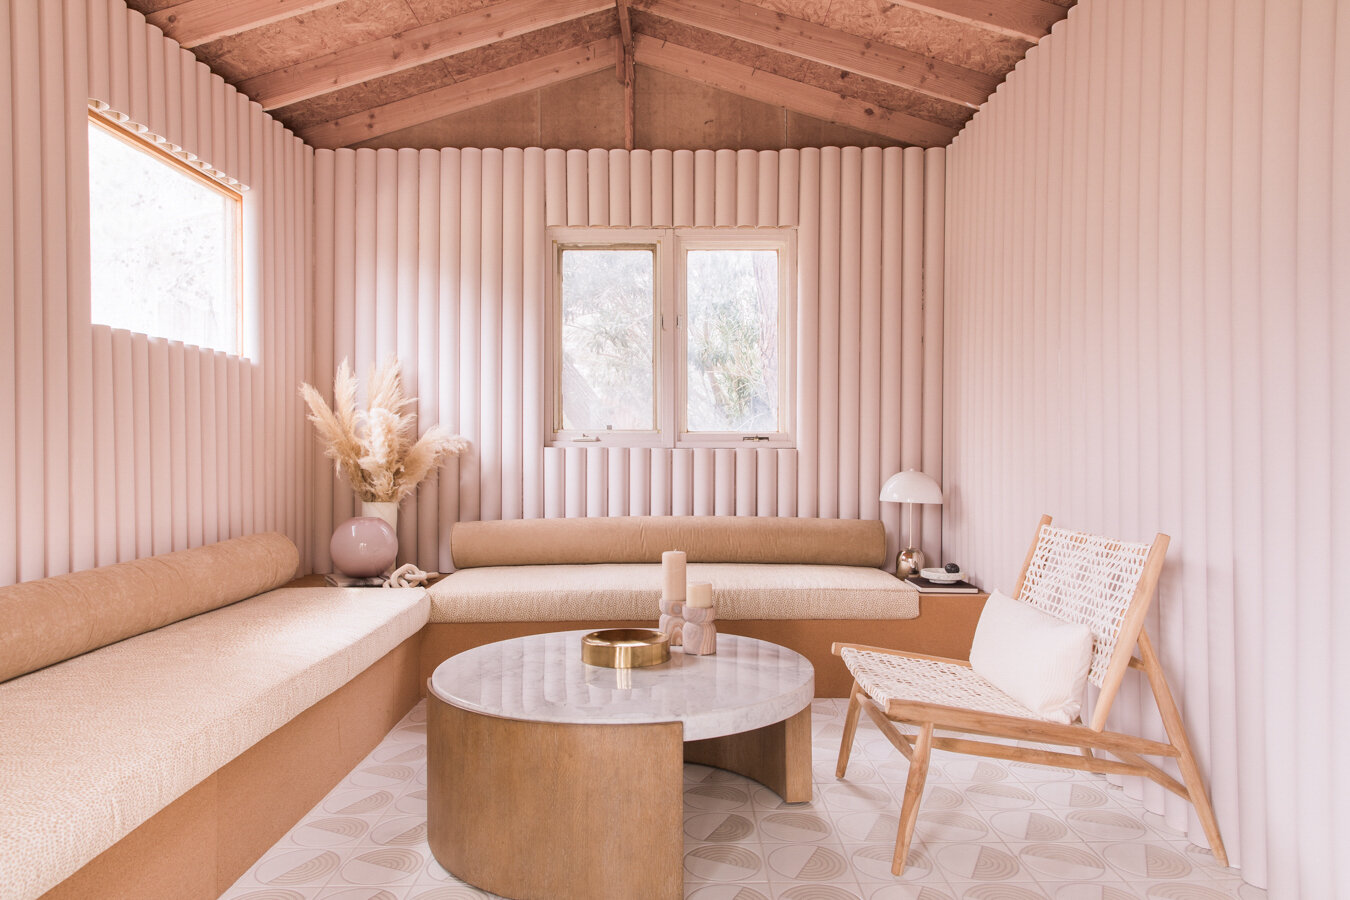 This remodeled PVC Studio was completely reimagined. Check out the complete remodel with more before and after's  on Caroline's blog.   Tile:   Terrain in White Motif from Fireclay   Cushions on Built-in Sofas made by Calico Corners:  bench seat:  Kravet x Crypton Design 34971 – 4 , bolster cushion:  Crypton Home Suede in Harlow   Chairs:   Safavieh Bandelier Off-White Natural Leather Accent Chair from Home Depot   Designed in Collaboration with Anne Sage. Photos:  Jayden Lee